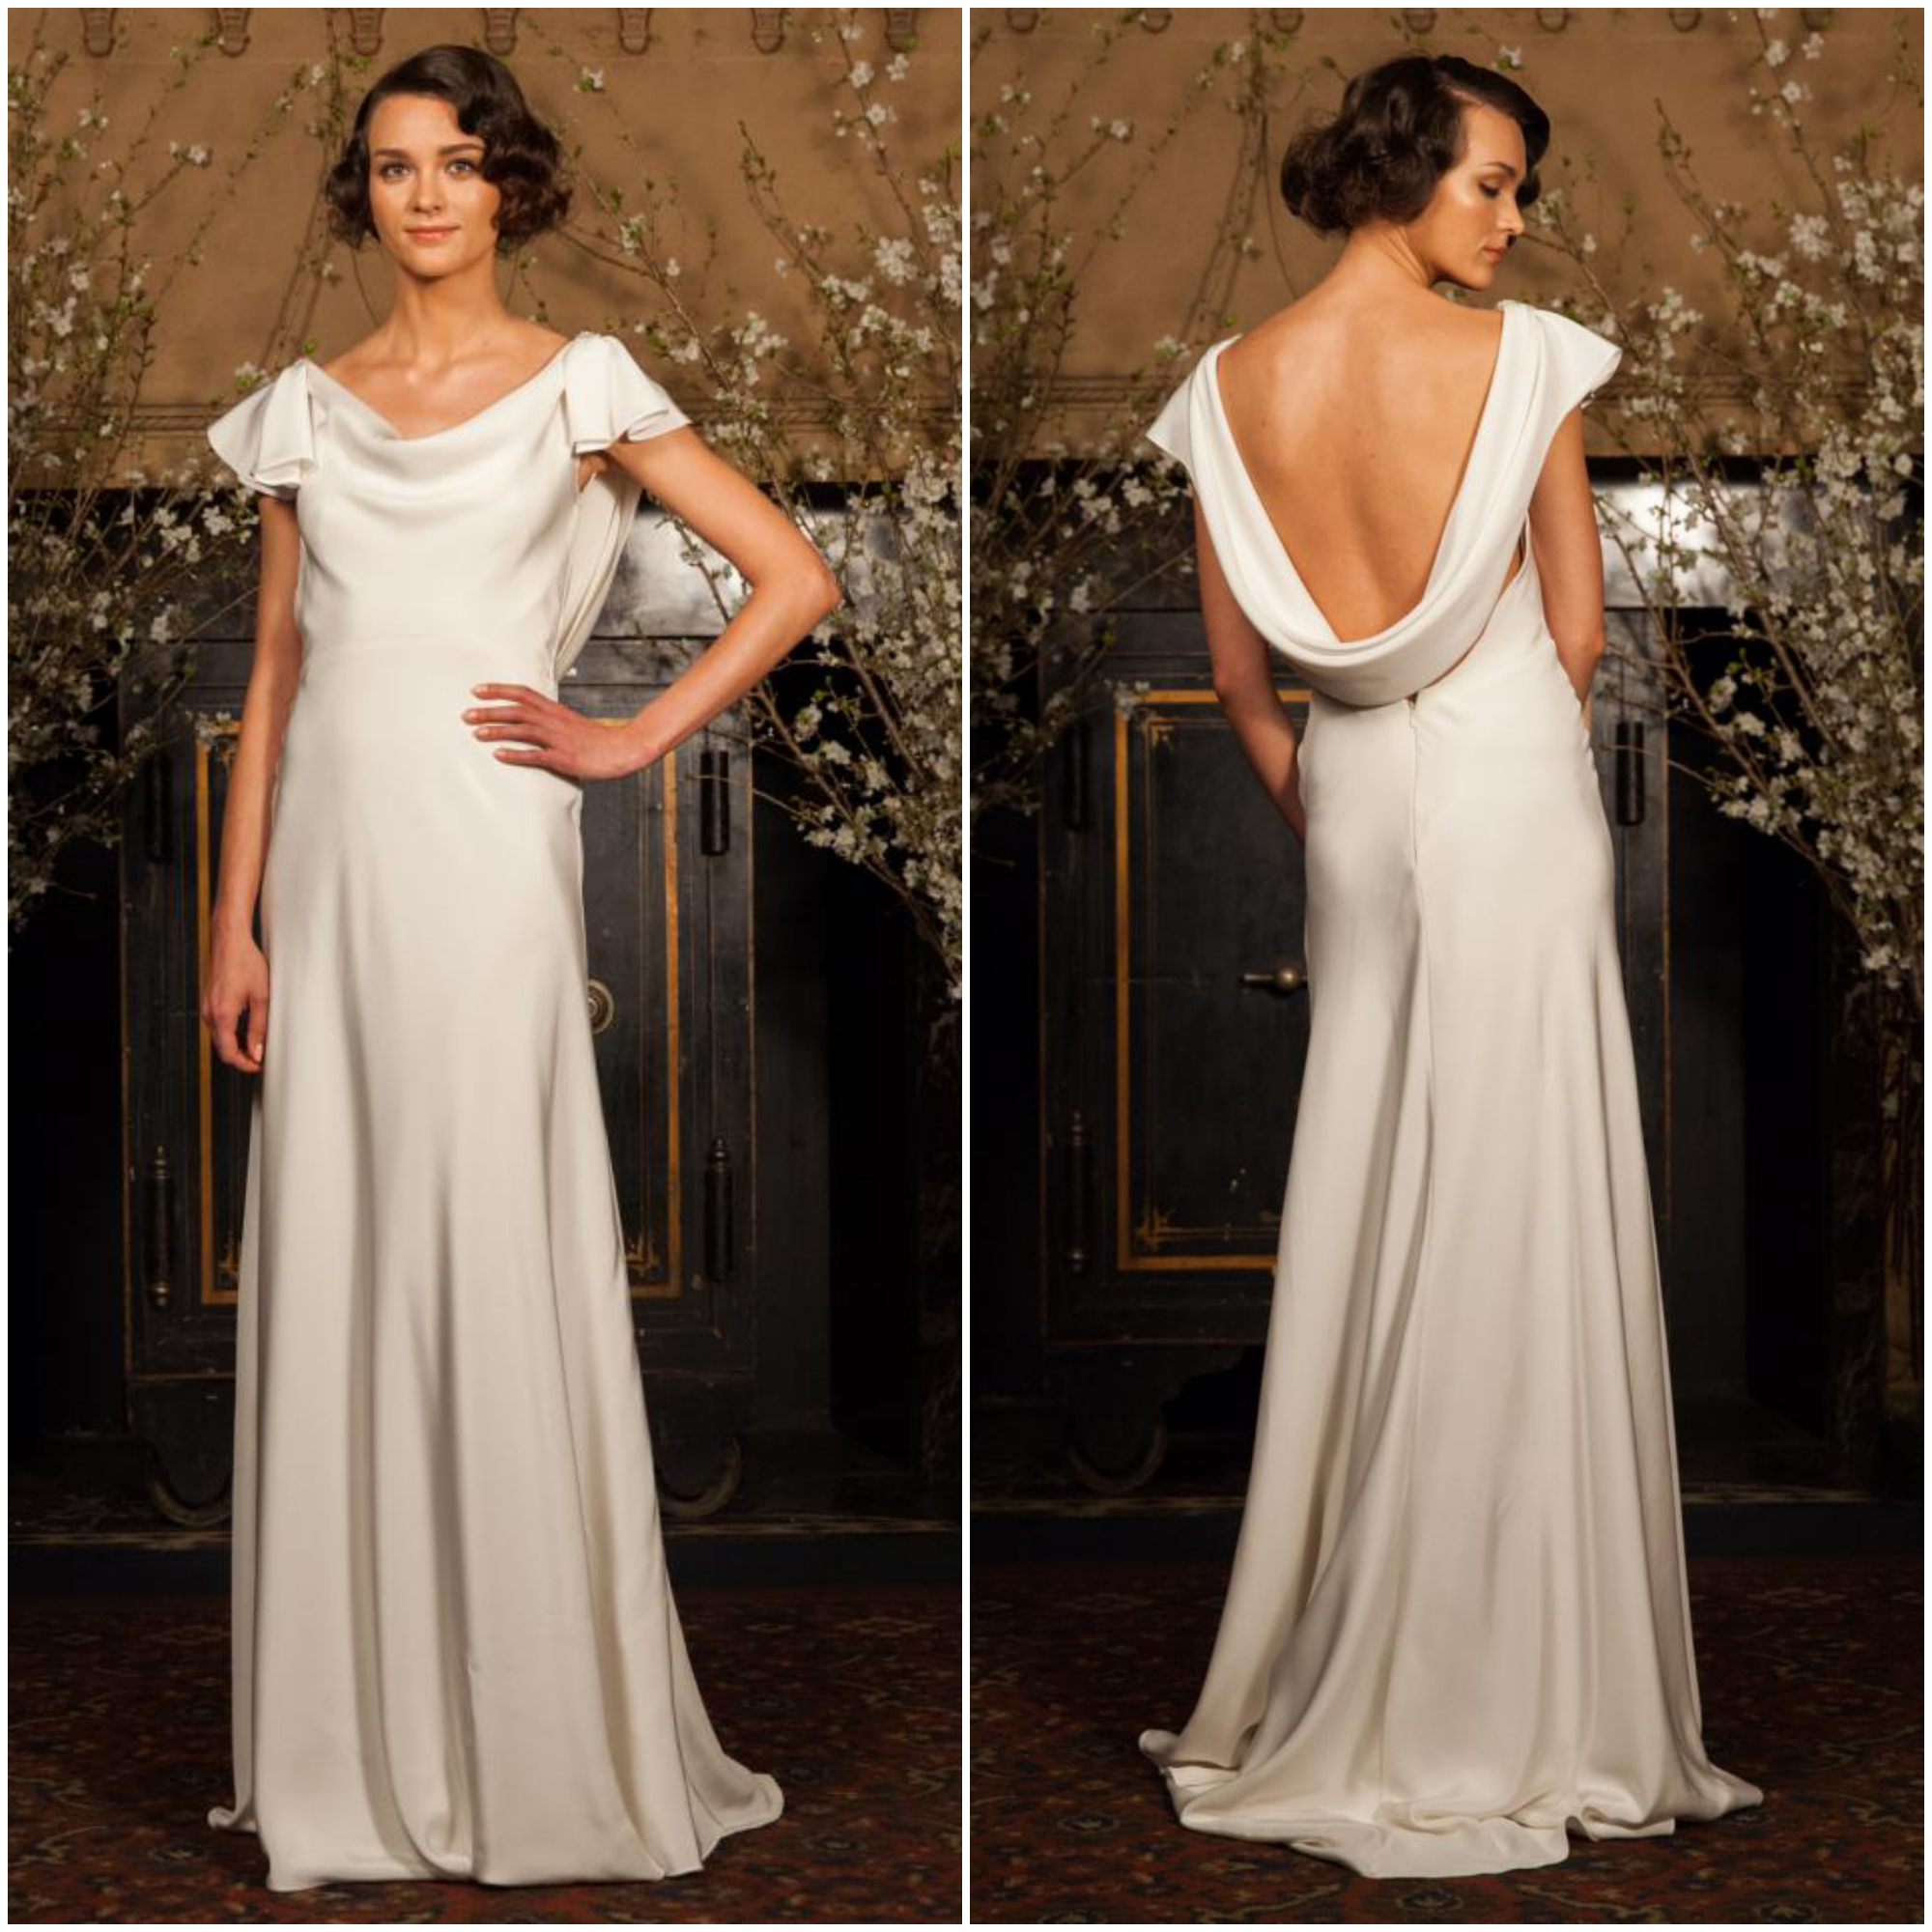 Grecian Strapless Bridesmaid Dresses 2013